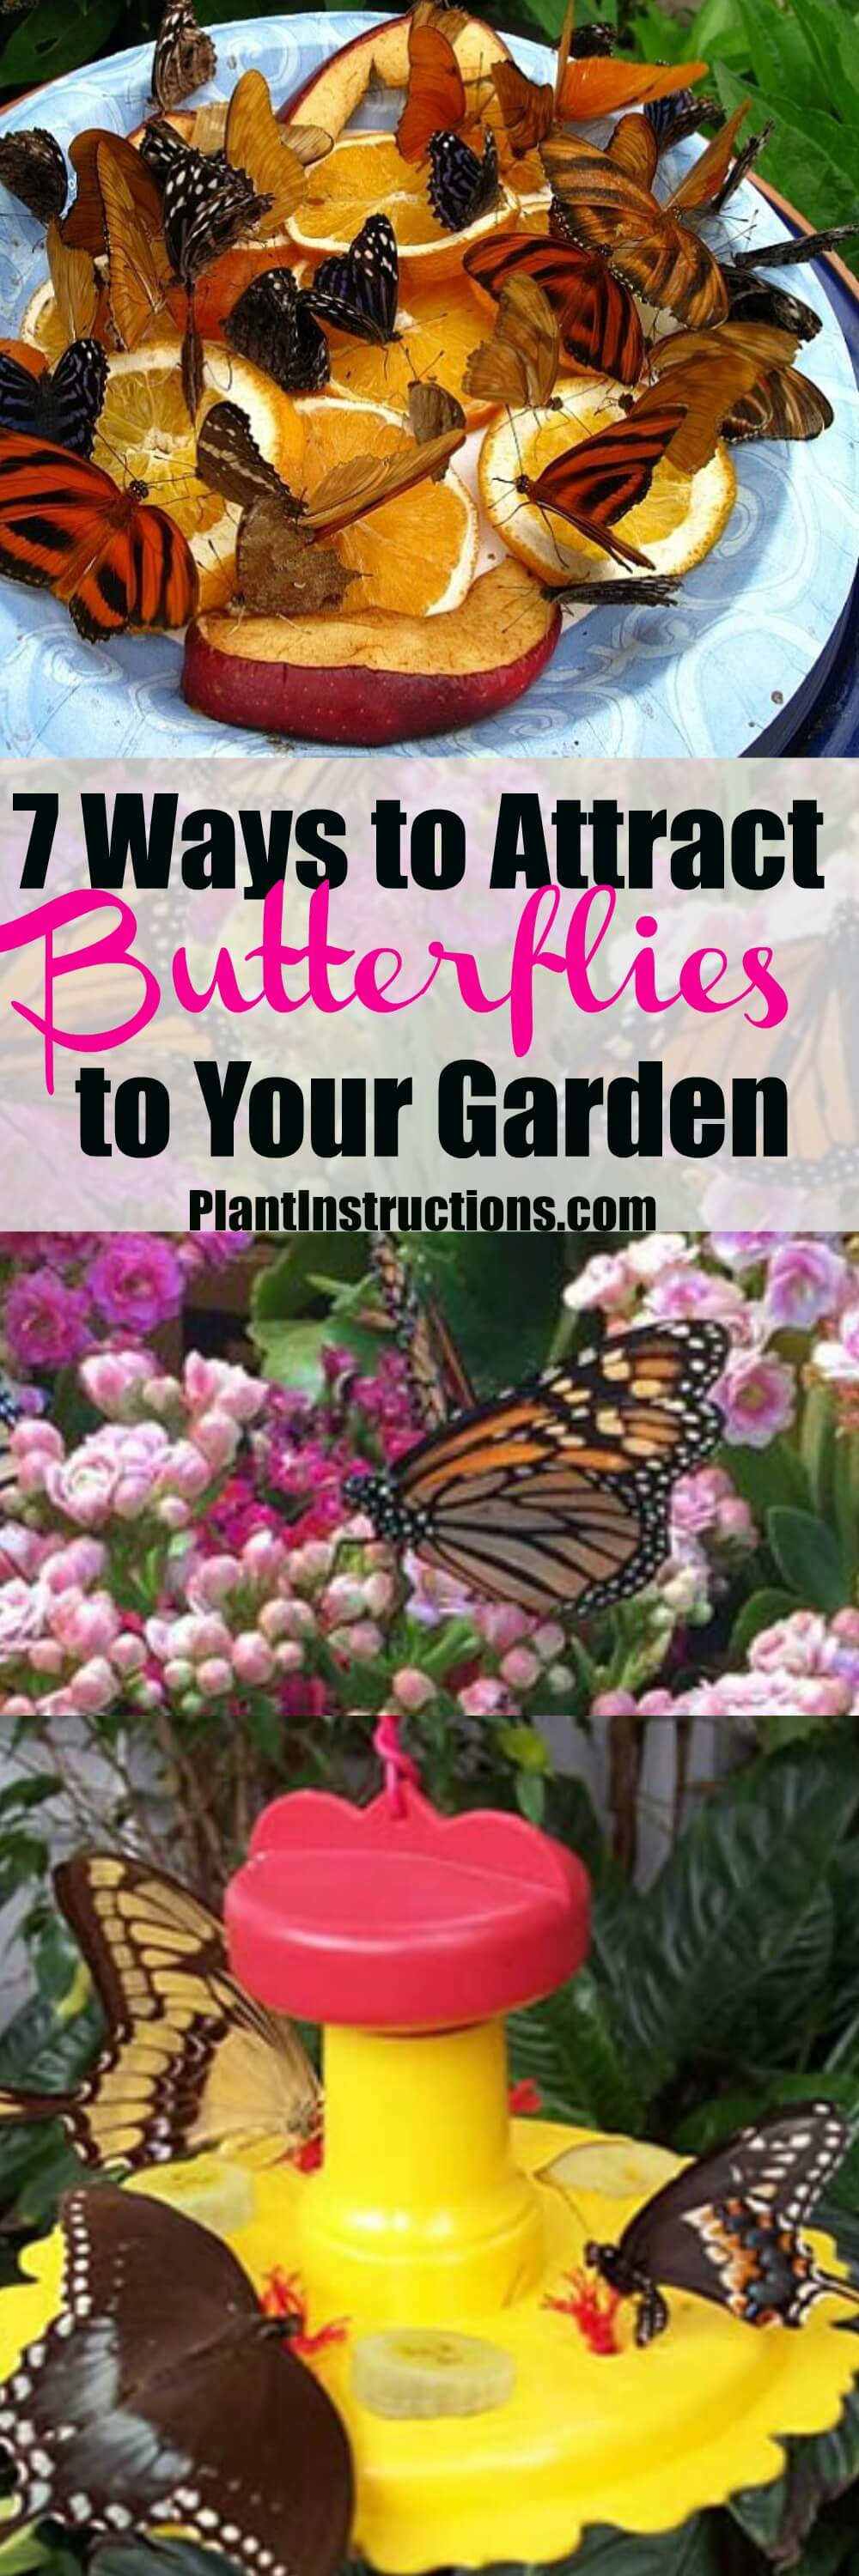 7 Ways to Attract Butterflies to Your Yard - Plant ...